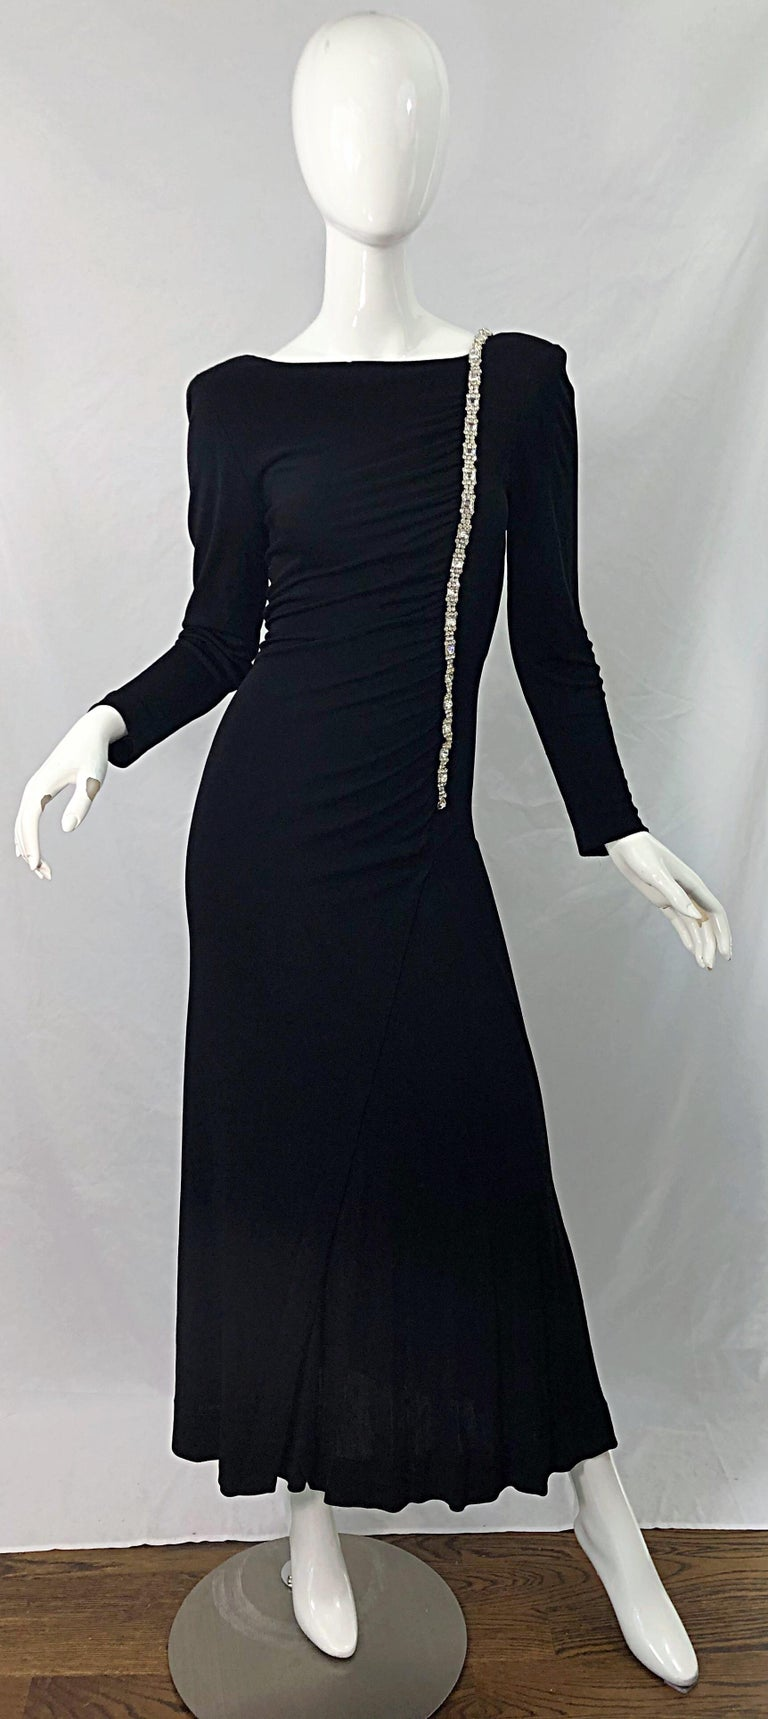 Beautiful and timeless WILLIAM TRAVILLA black matte silk jersey rhinestone encrusted long sleeve evening gown ! Features flattering ruching throughout the bodice. Interior shoulder pads add just the right amount of volume. Rhinestones hand-sewn